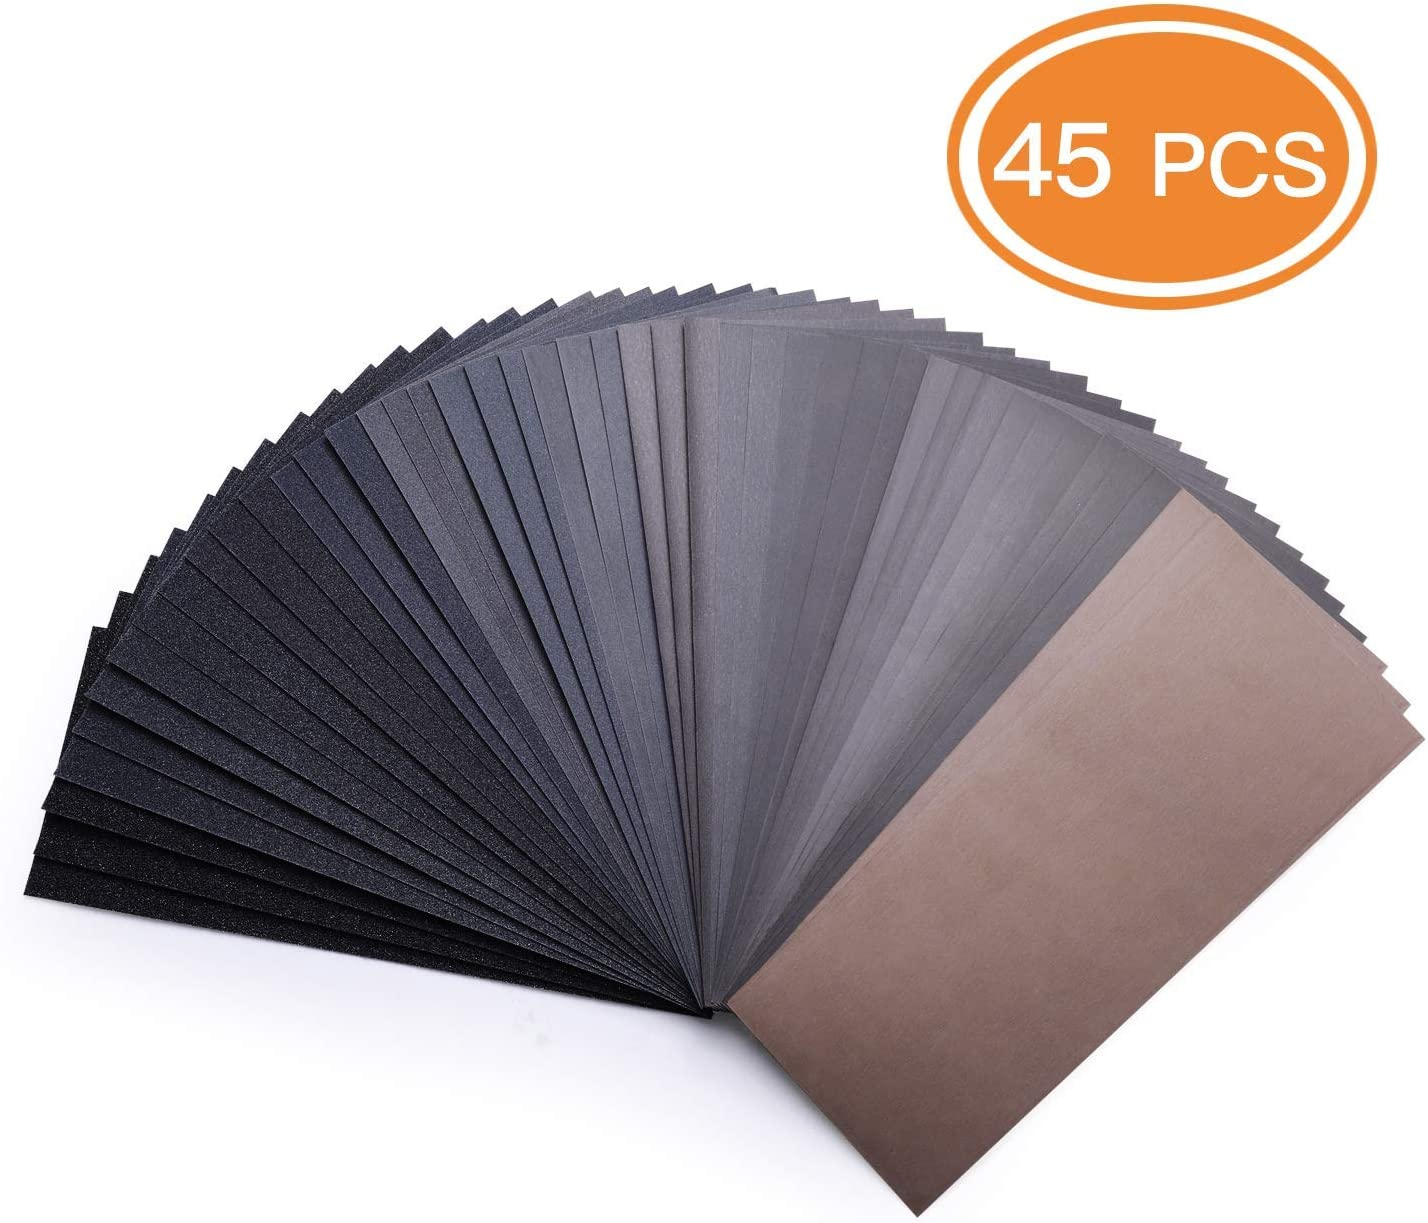 45-Piece 80 To 3000 Grit Wet Dry Sandpaper 9 x 3.6 Inches for Wet or Dry Sanding, Metal Sanding and Automotive Polishing Wood Furniture Finishing - ASD07C 71wI4t82pCL